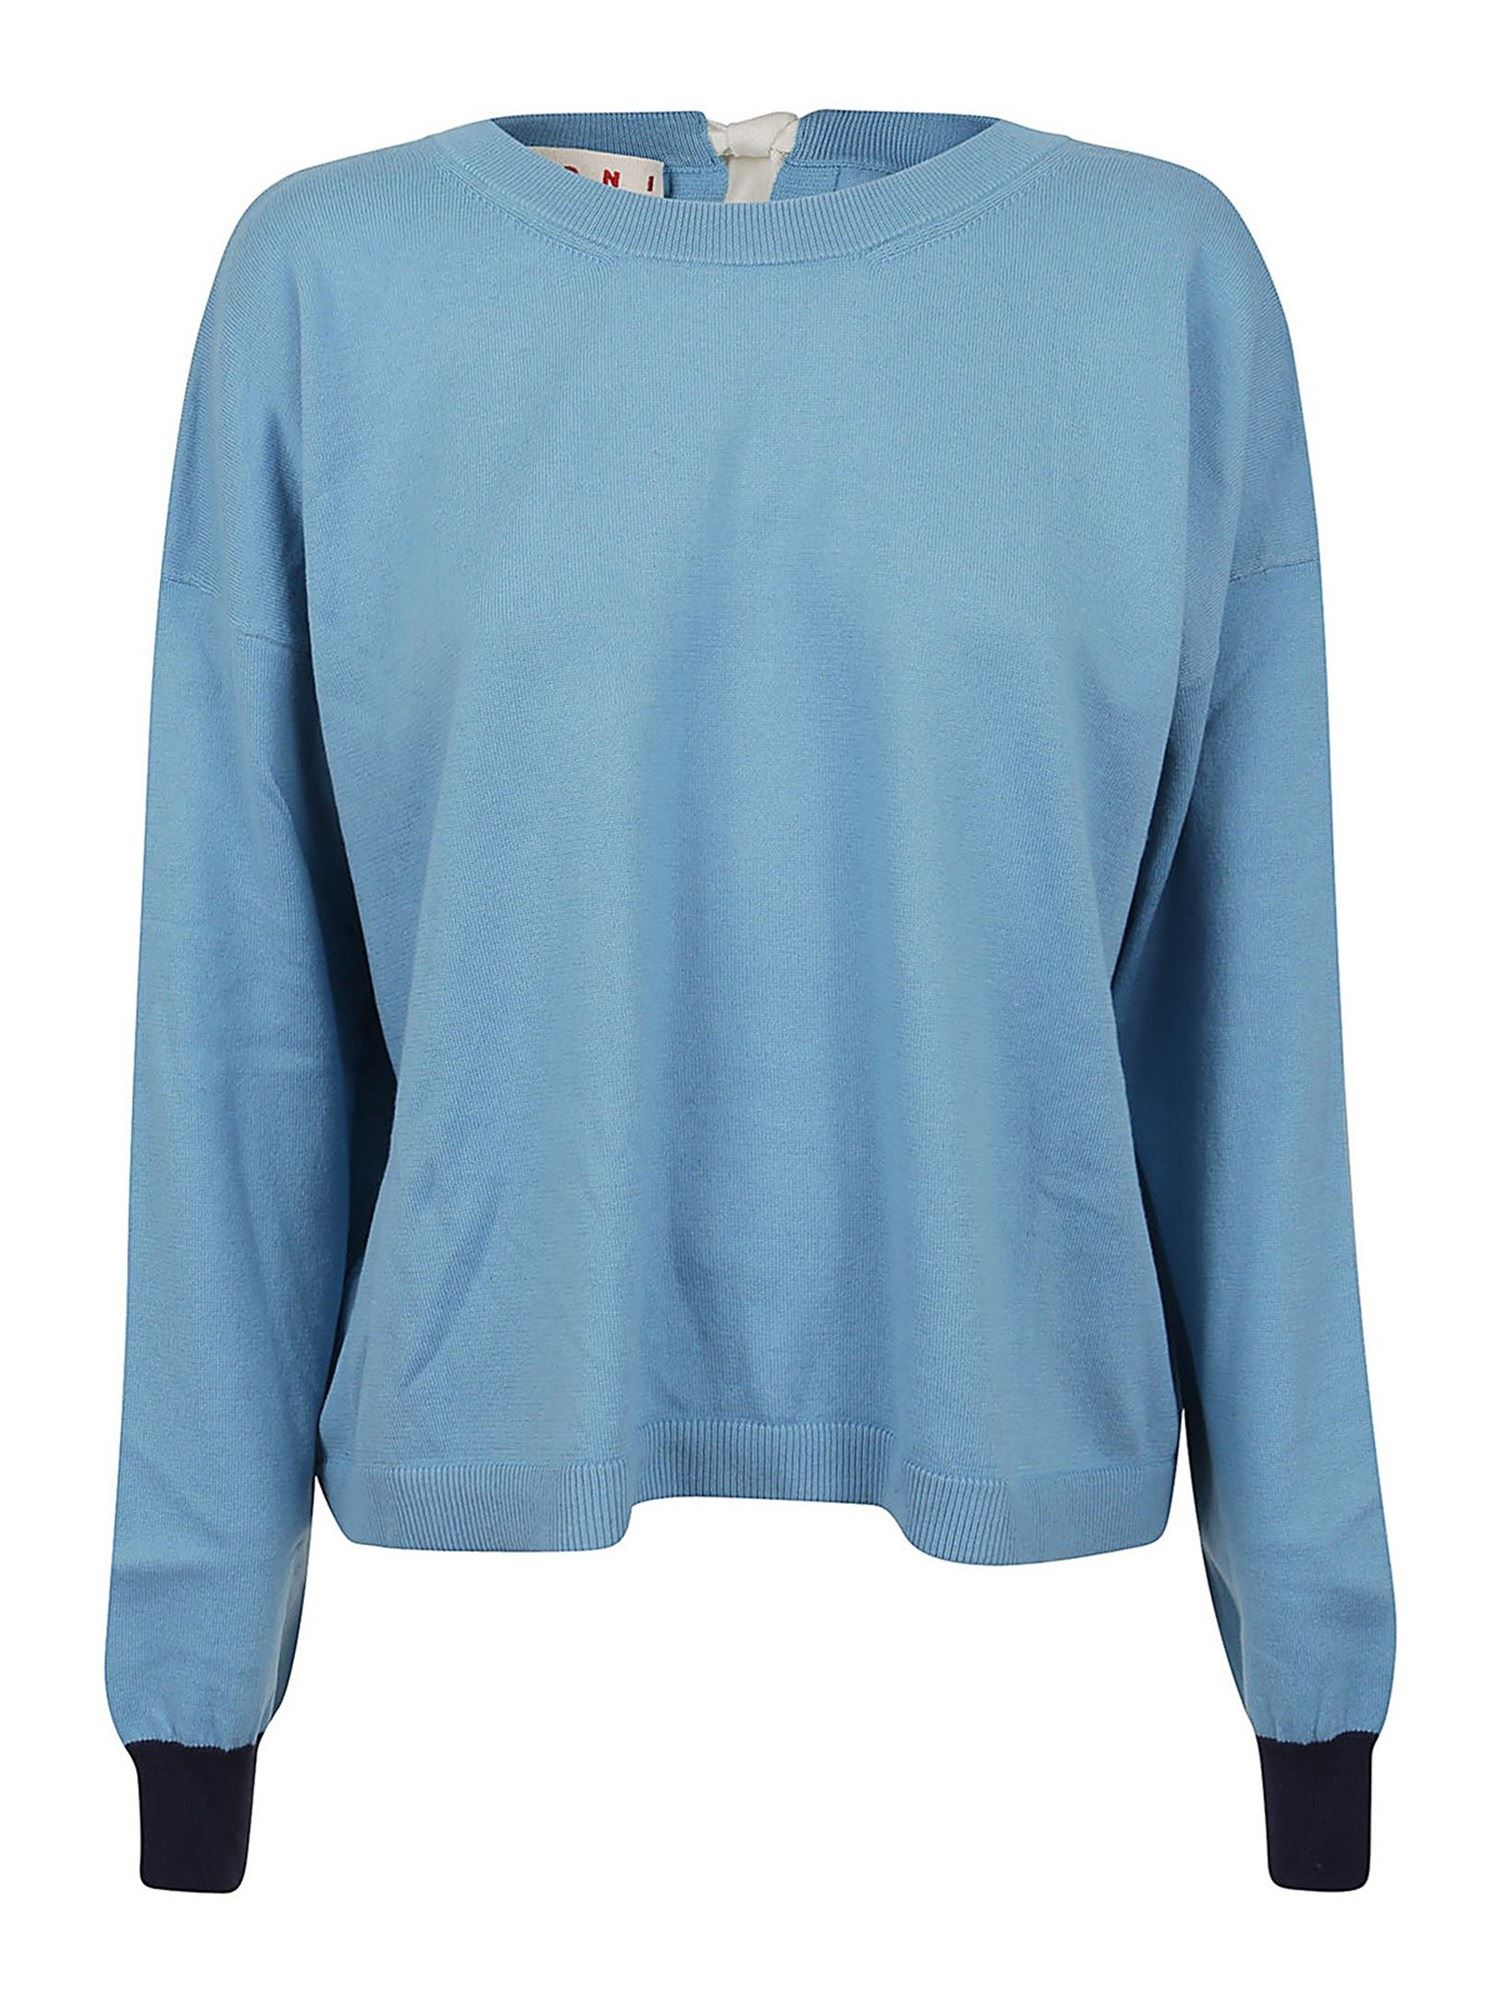 Marni CASHMERE BLEND CREWNECK IN LIGHT BLUE